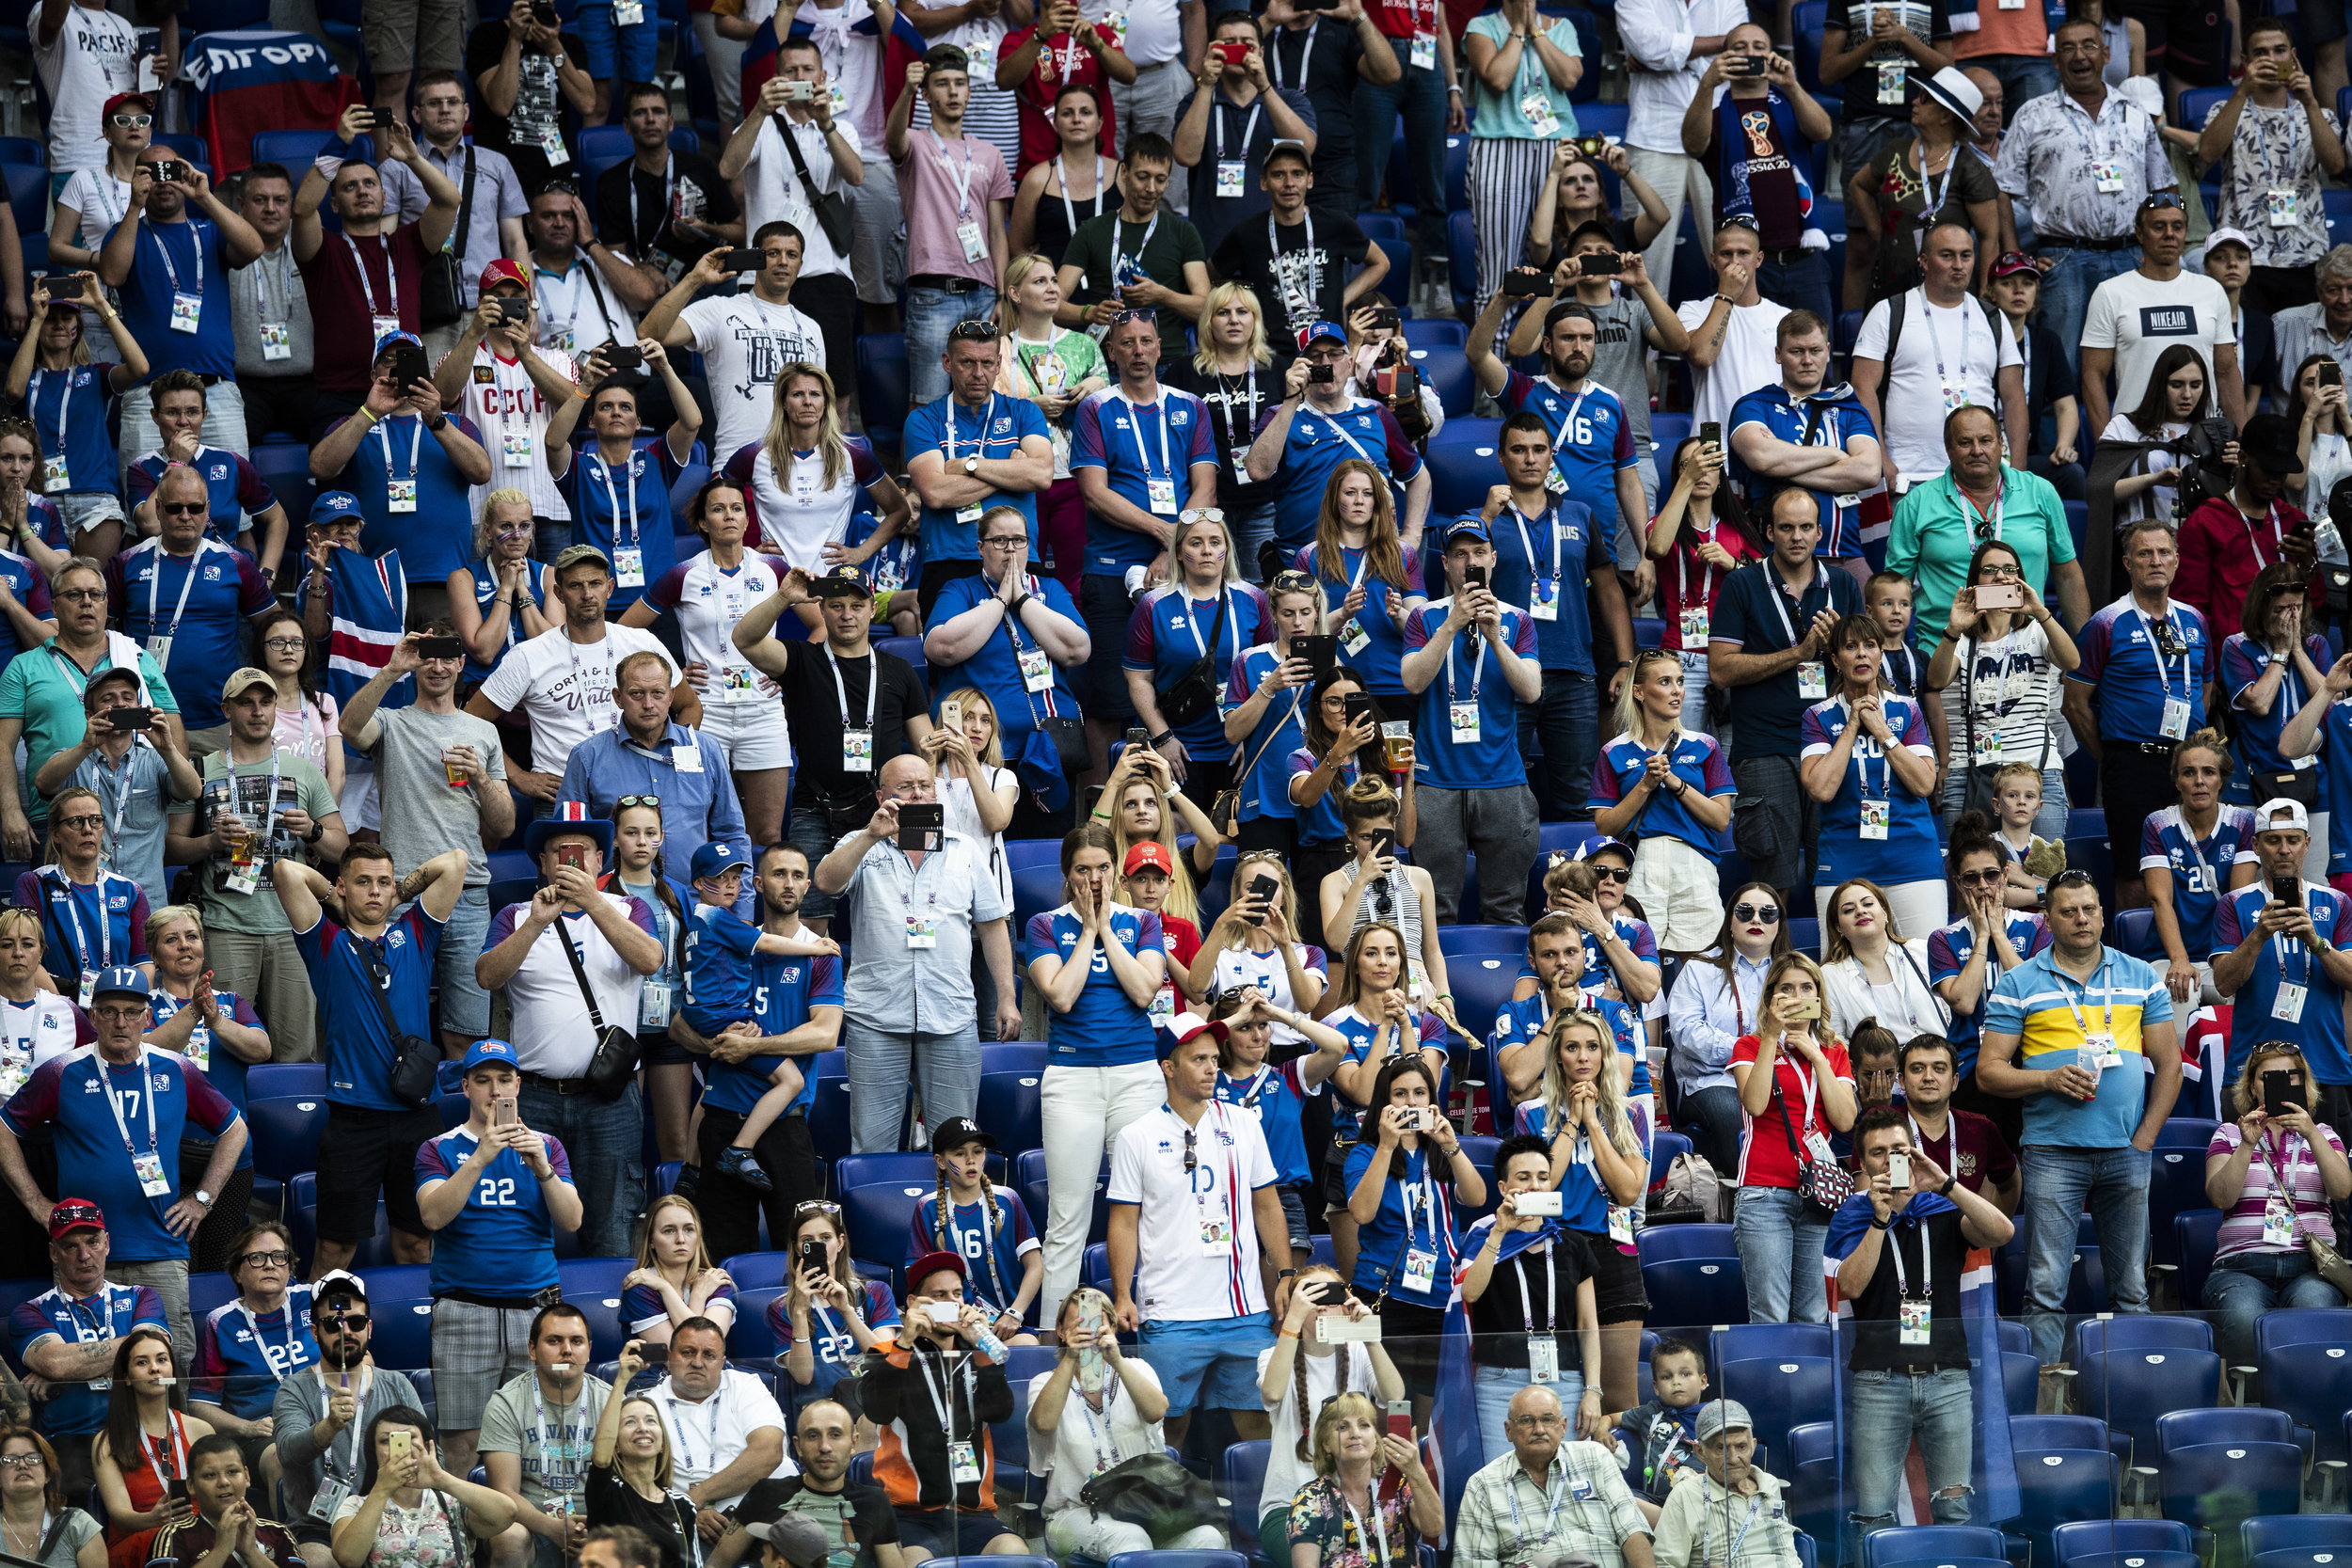 Icelanders react as their team is awarded with a penalty kick during a game against Nigeria in Volgograd